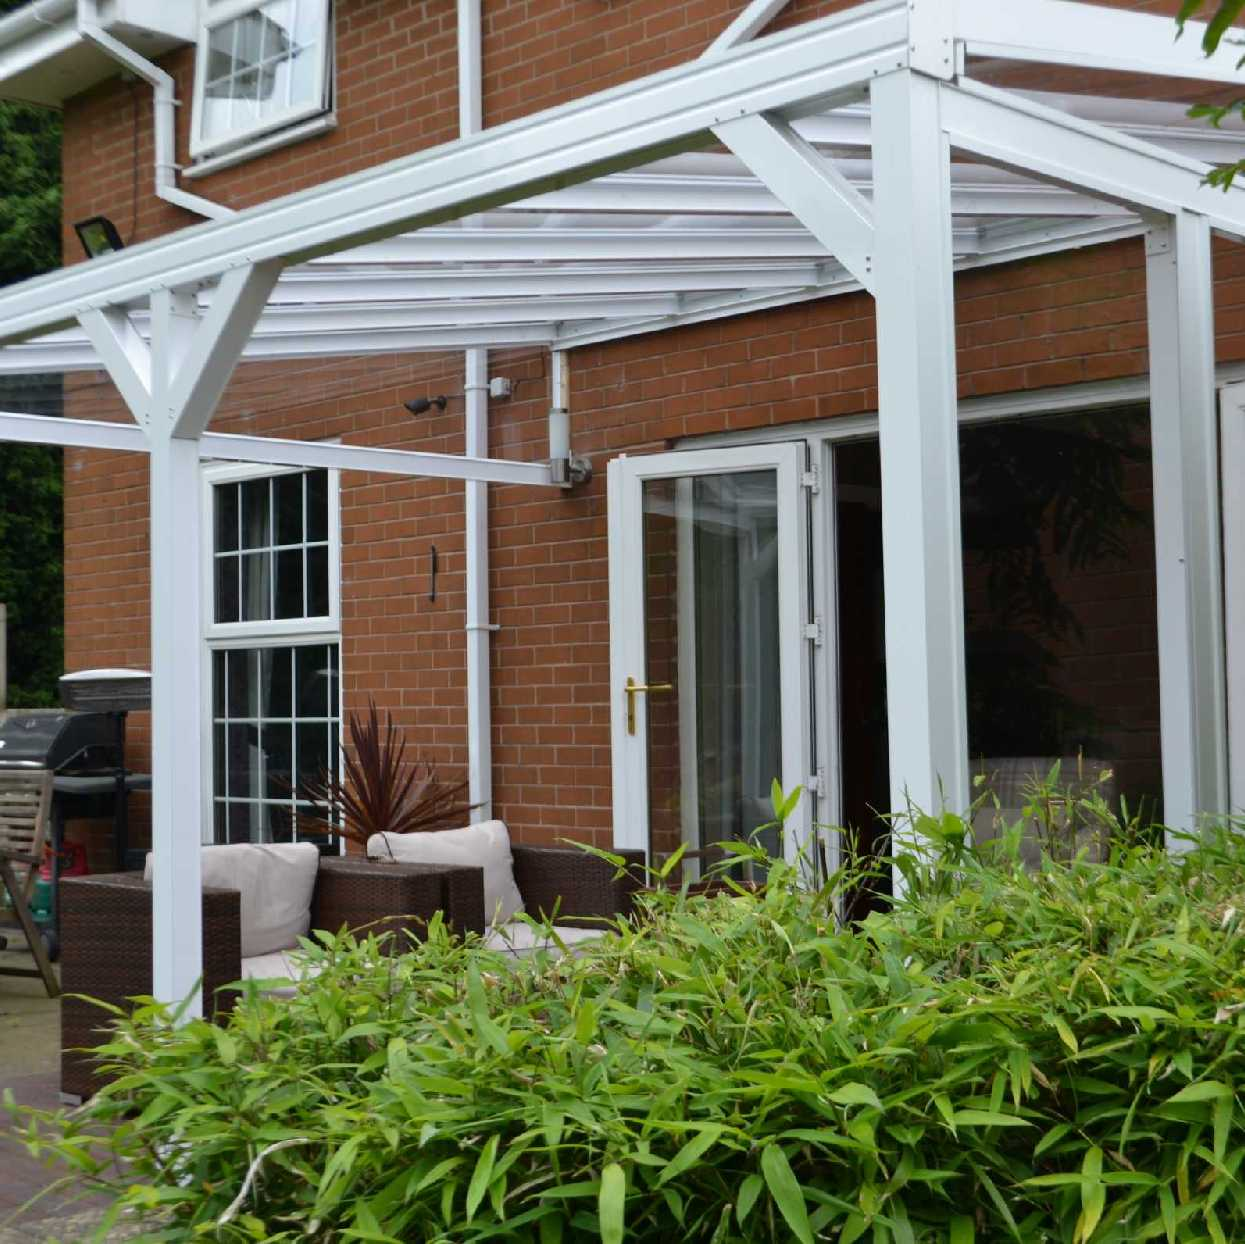 Omega Smart White Lean-To Canopy with 6mm Glass Clear Plate Polycarbonate Glazing - 10.5m (W) x 3.5m (P), (5) Supporting Posts from Omega Build